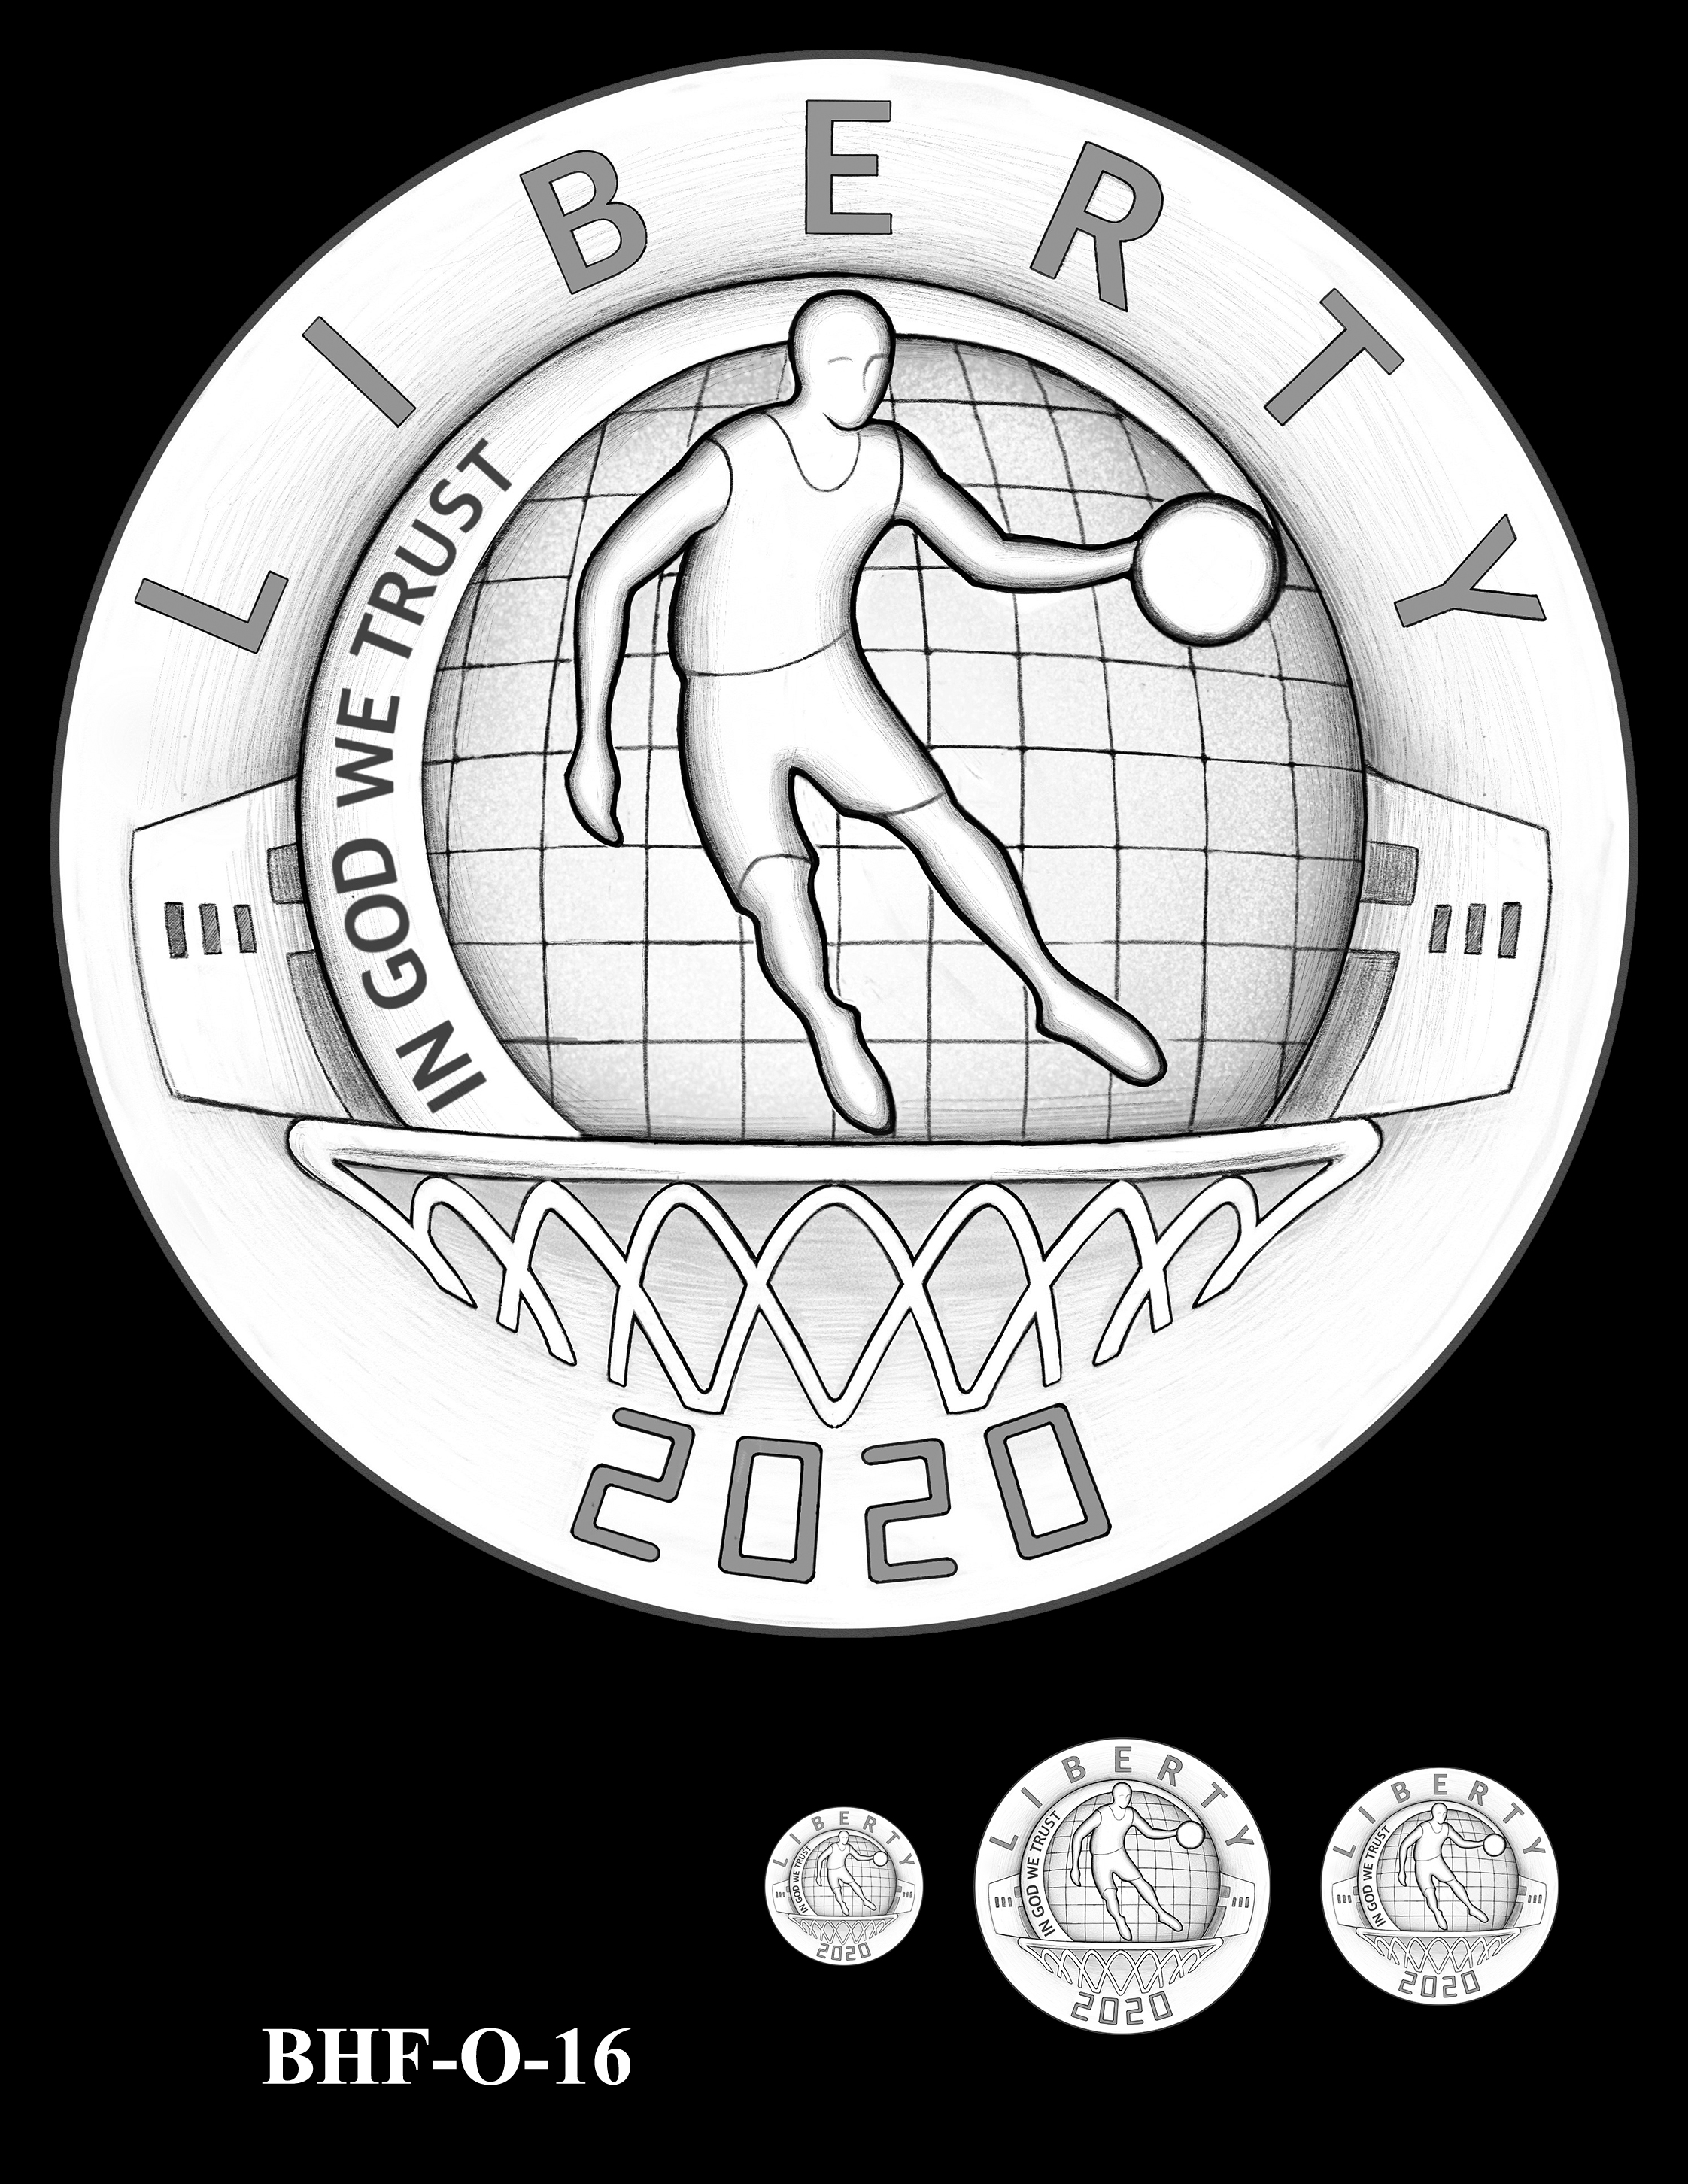 BHF-O-16 -- 2020 Basketball Hall of Fame Commemorative Coin Program - Common Obverse